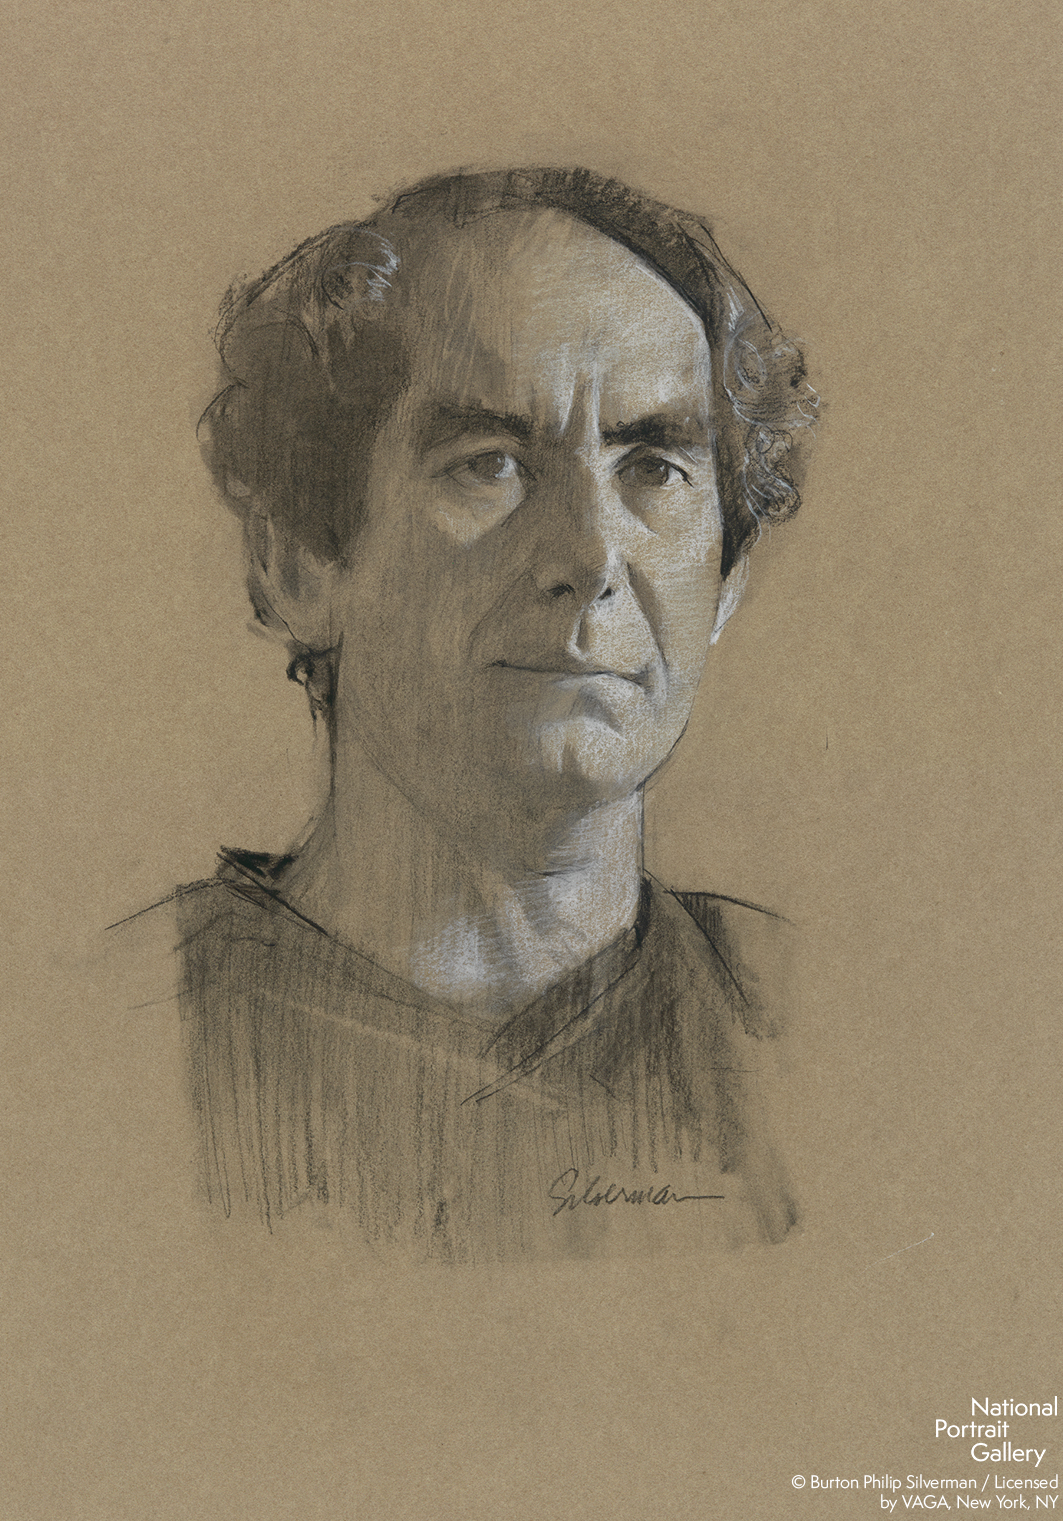 A black and white sketch of a man on dark paper